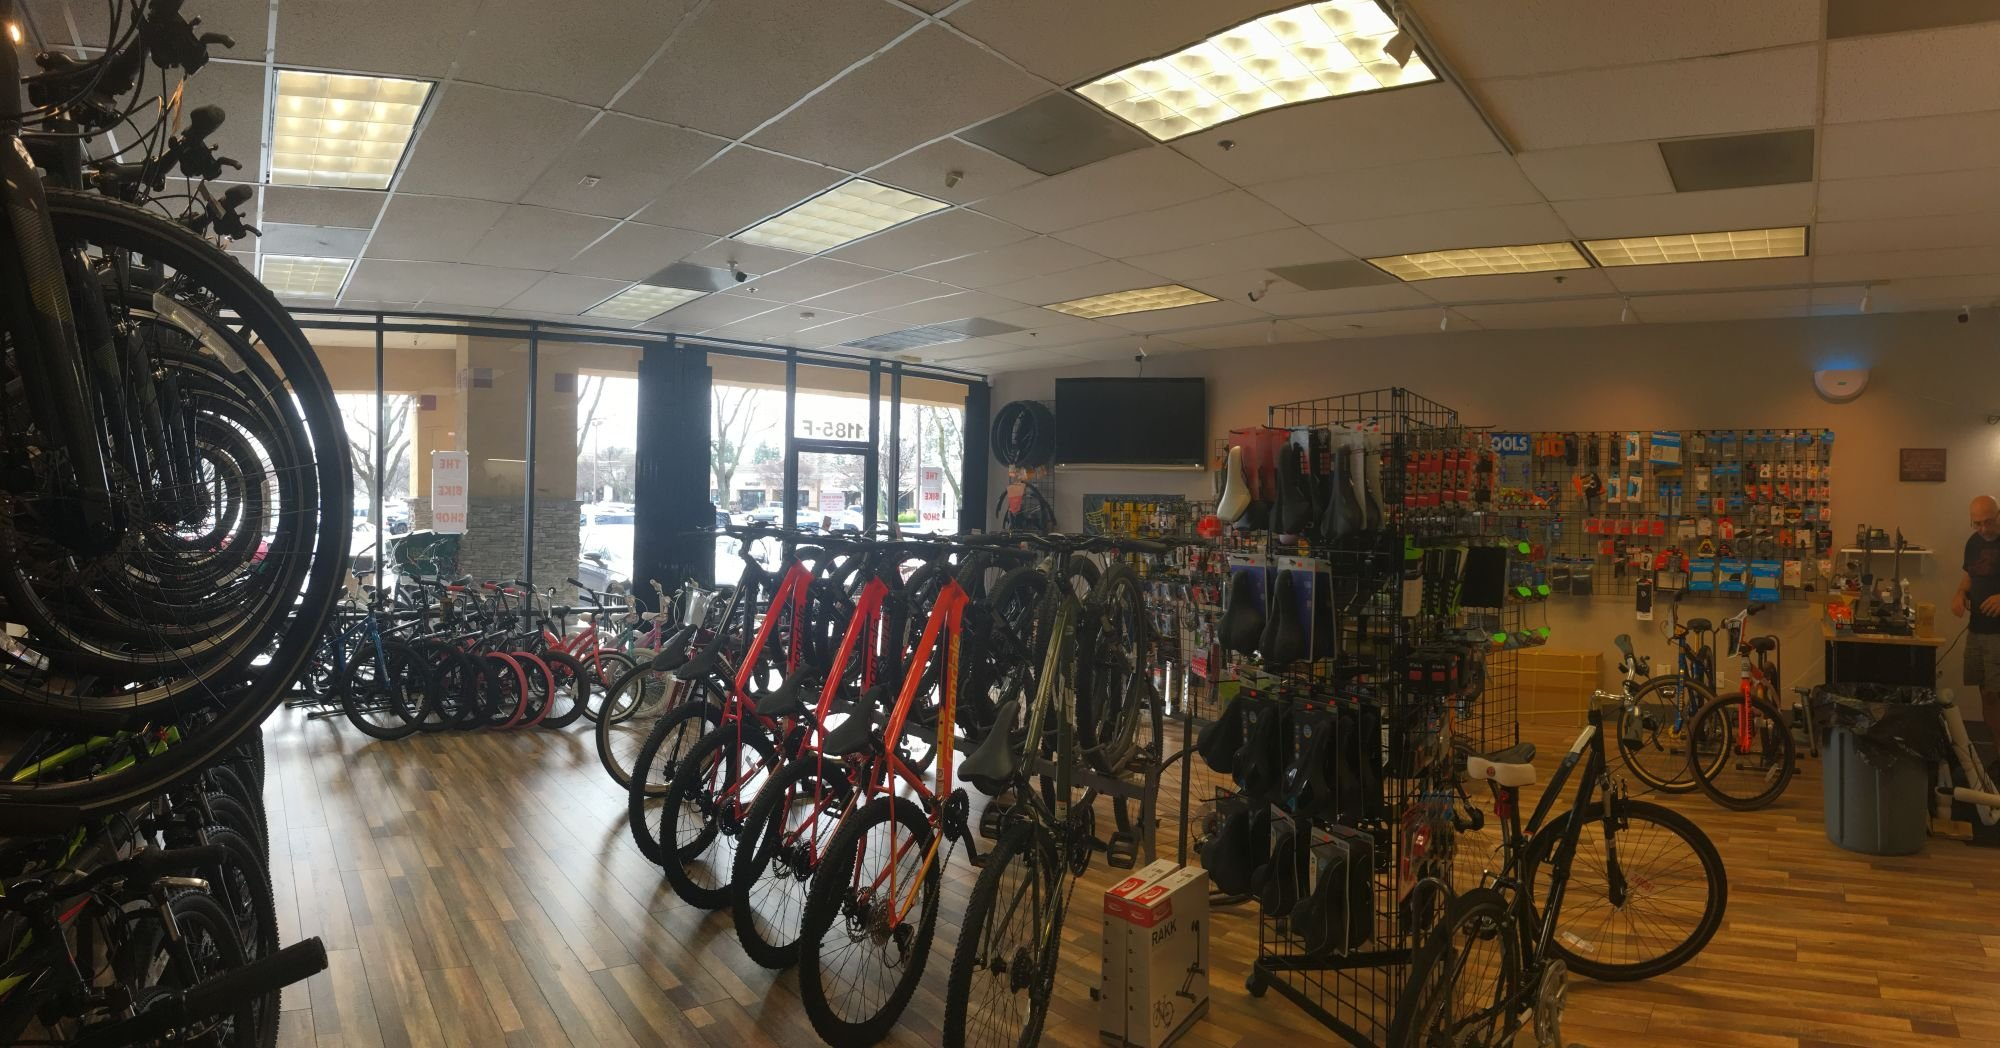 The Bike Shop | Service, Repairs, and More